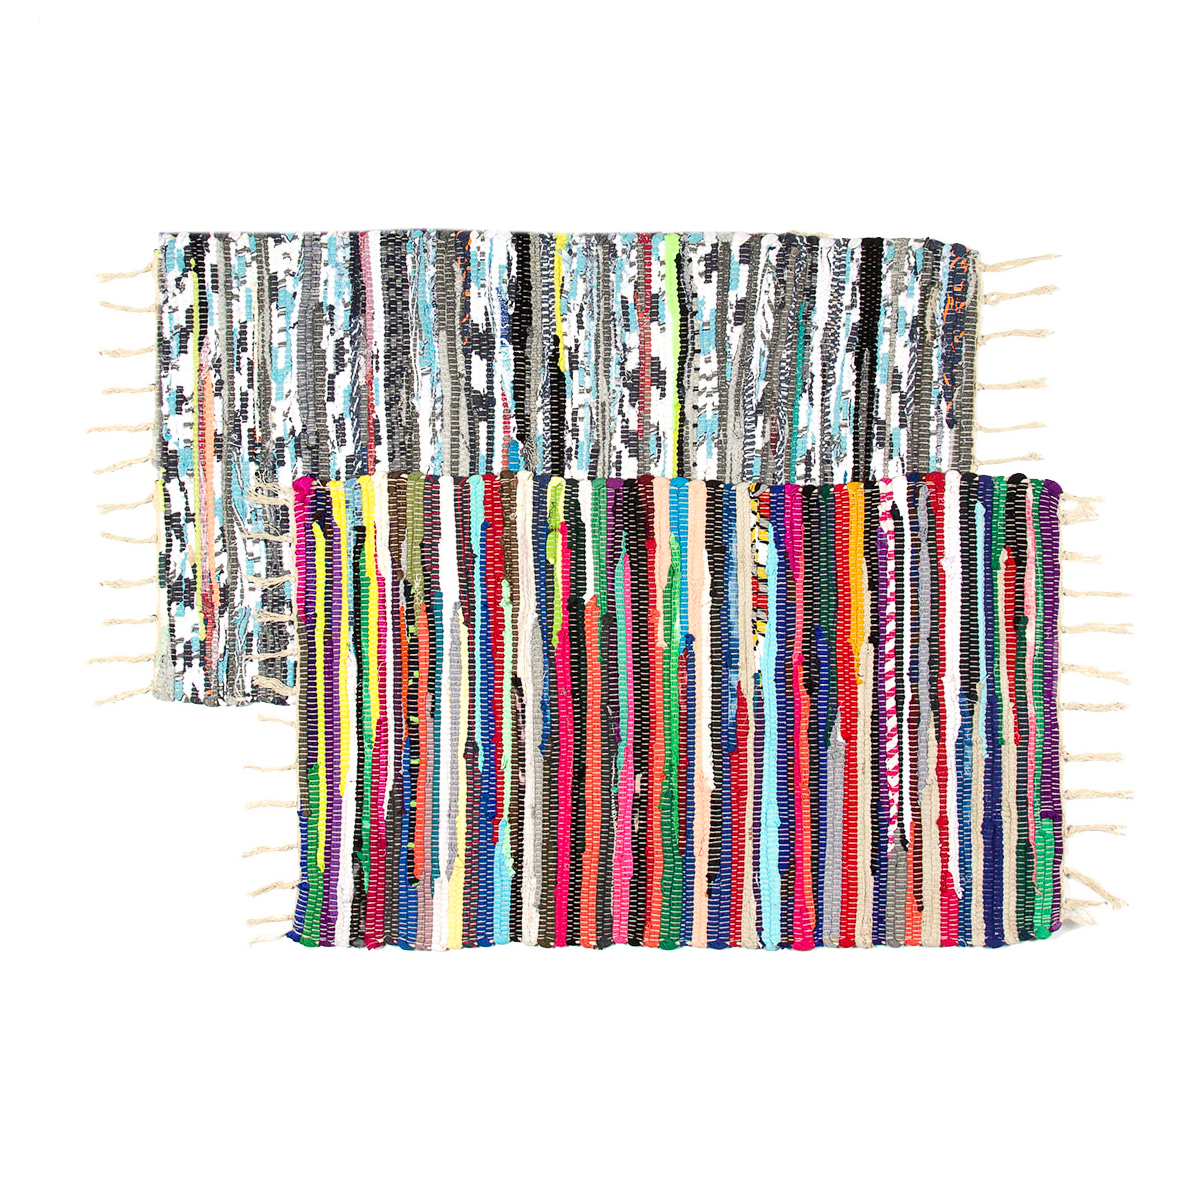 """Set of 2 Chindi Rag Rugs 20""""x32"""" Multi Colored Recycled Cotton Woven Entryway For Living Room Kitchen Bathroom Bedroom Dorm"""